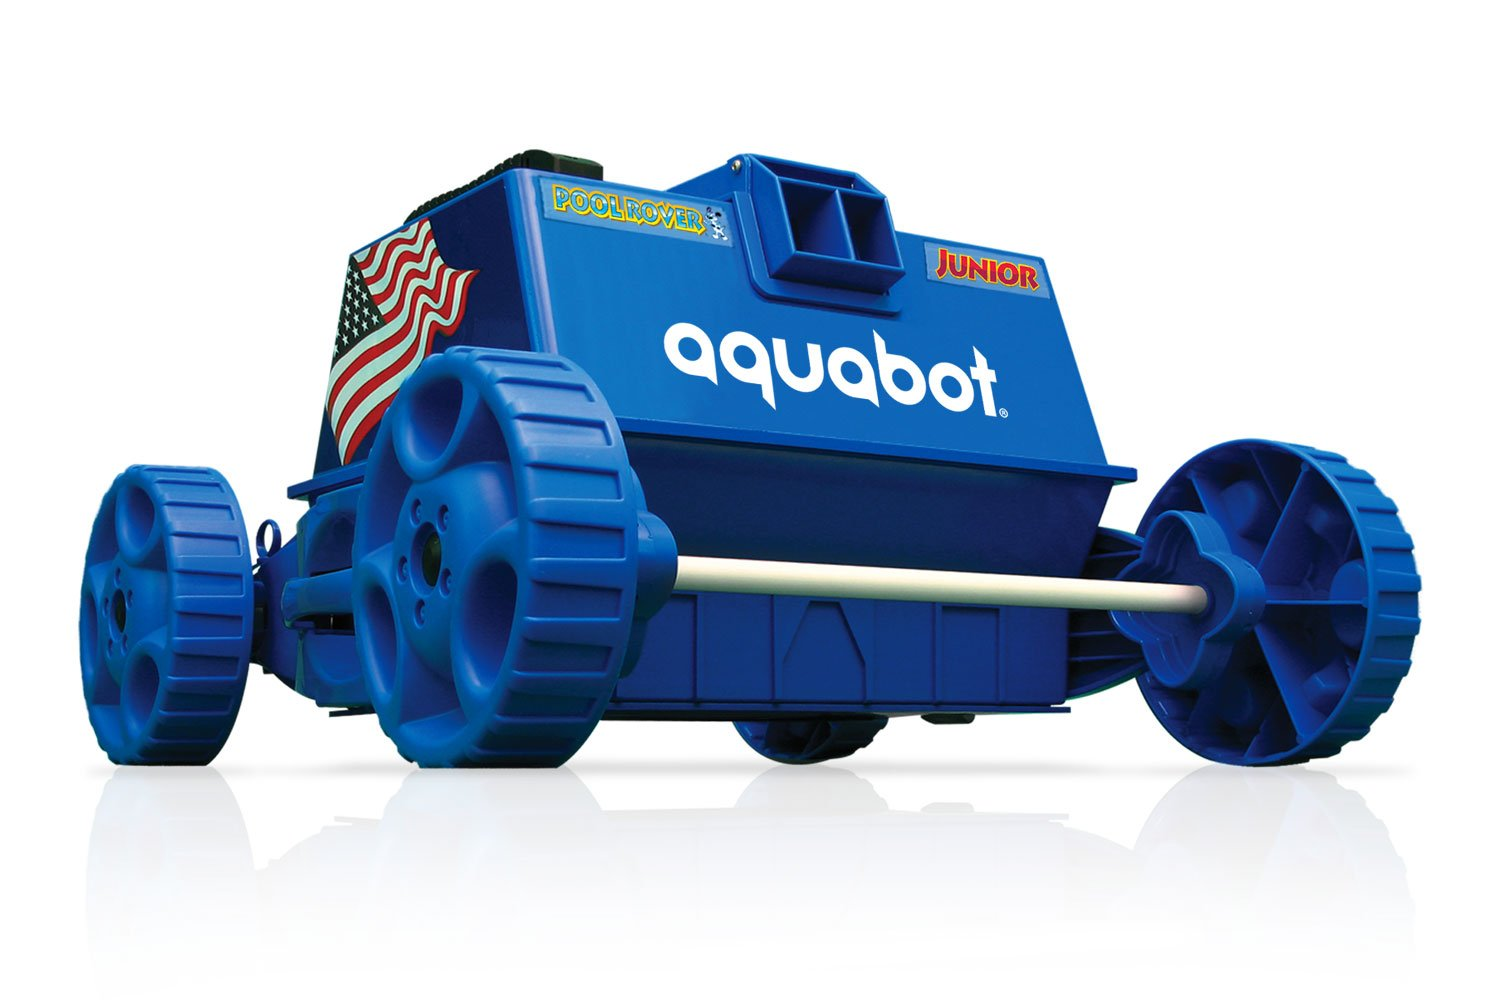 aquabot pool rover junior robotic pool cleaner